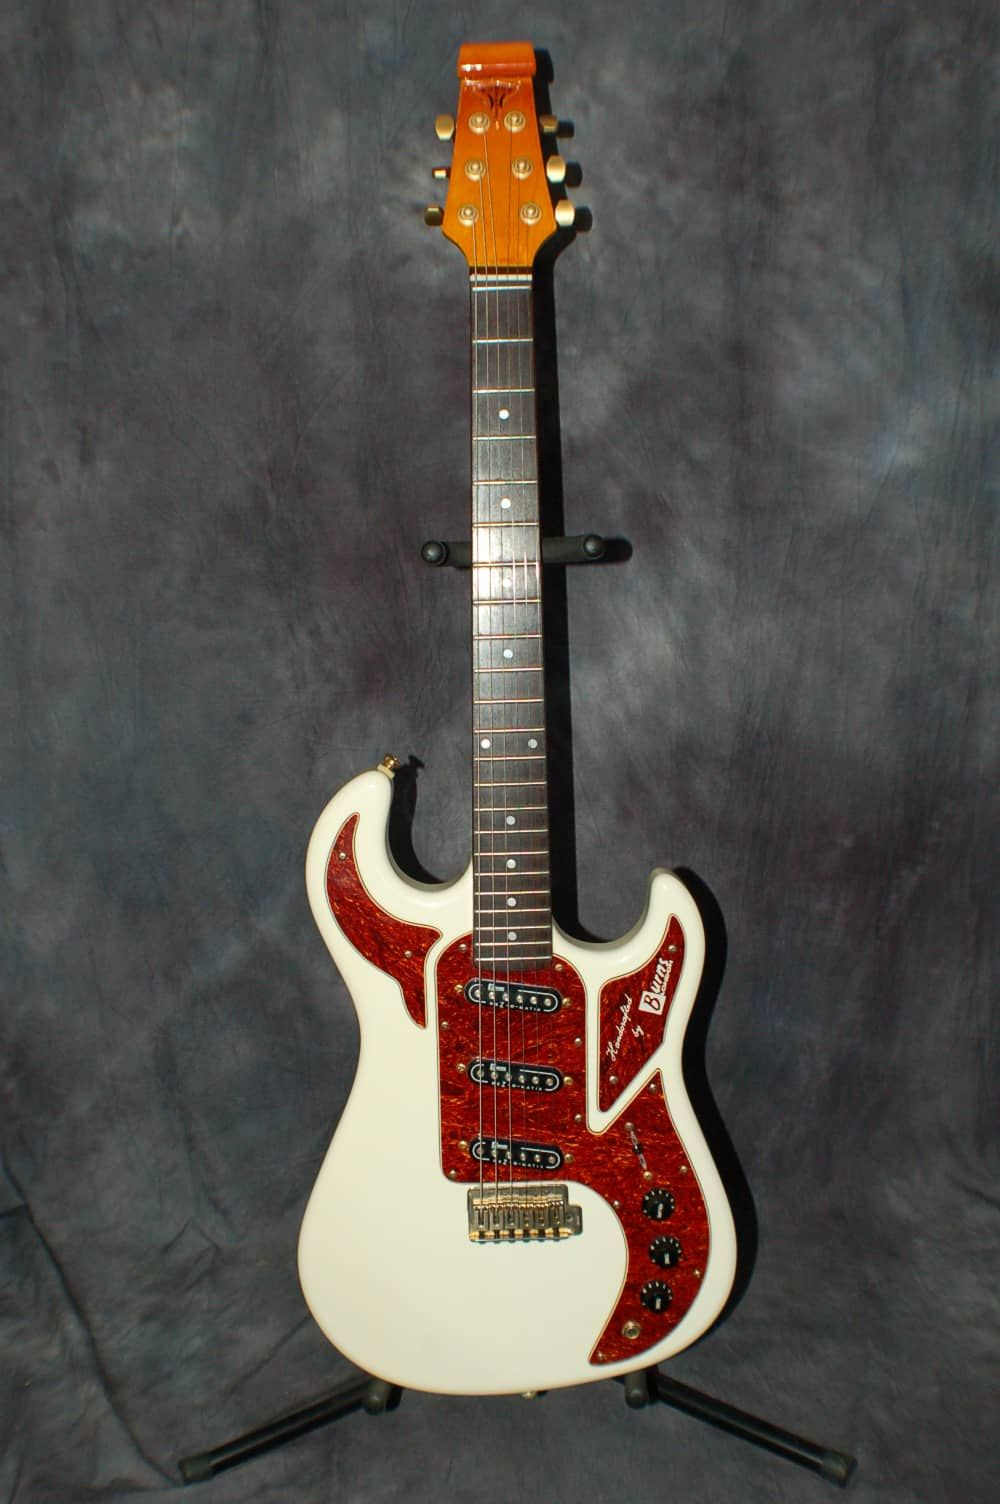 2002 Burns Of London Marquee Club Series Shadow White Pro Setup New Profile Gigbag Lawman Guitars Reverb Guitar Marquee Guitar Collection